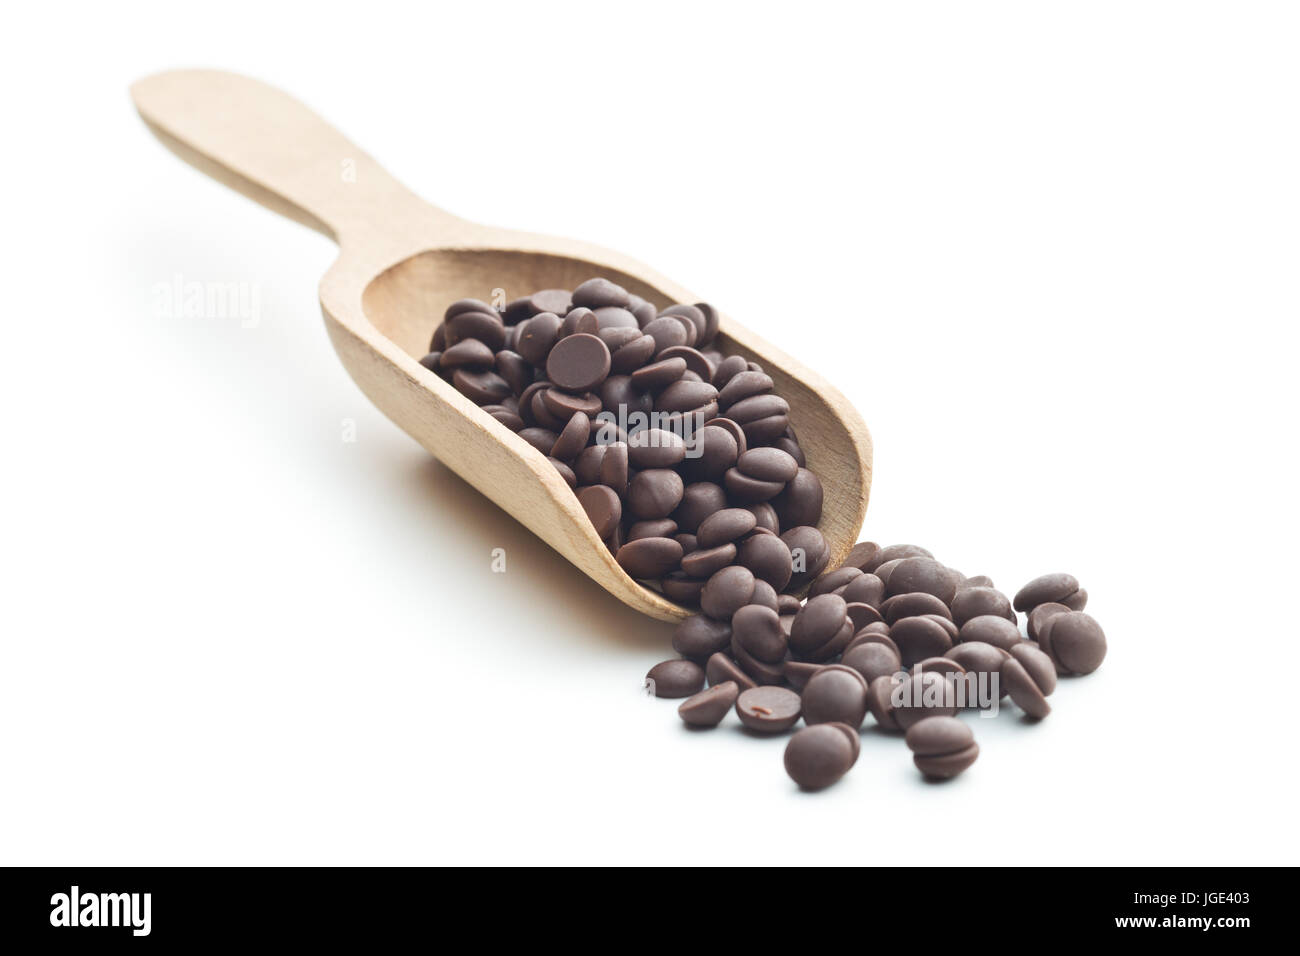 Tasty chocolate morsels in wooden scoop isolated on white background. - Stock Image